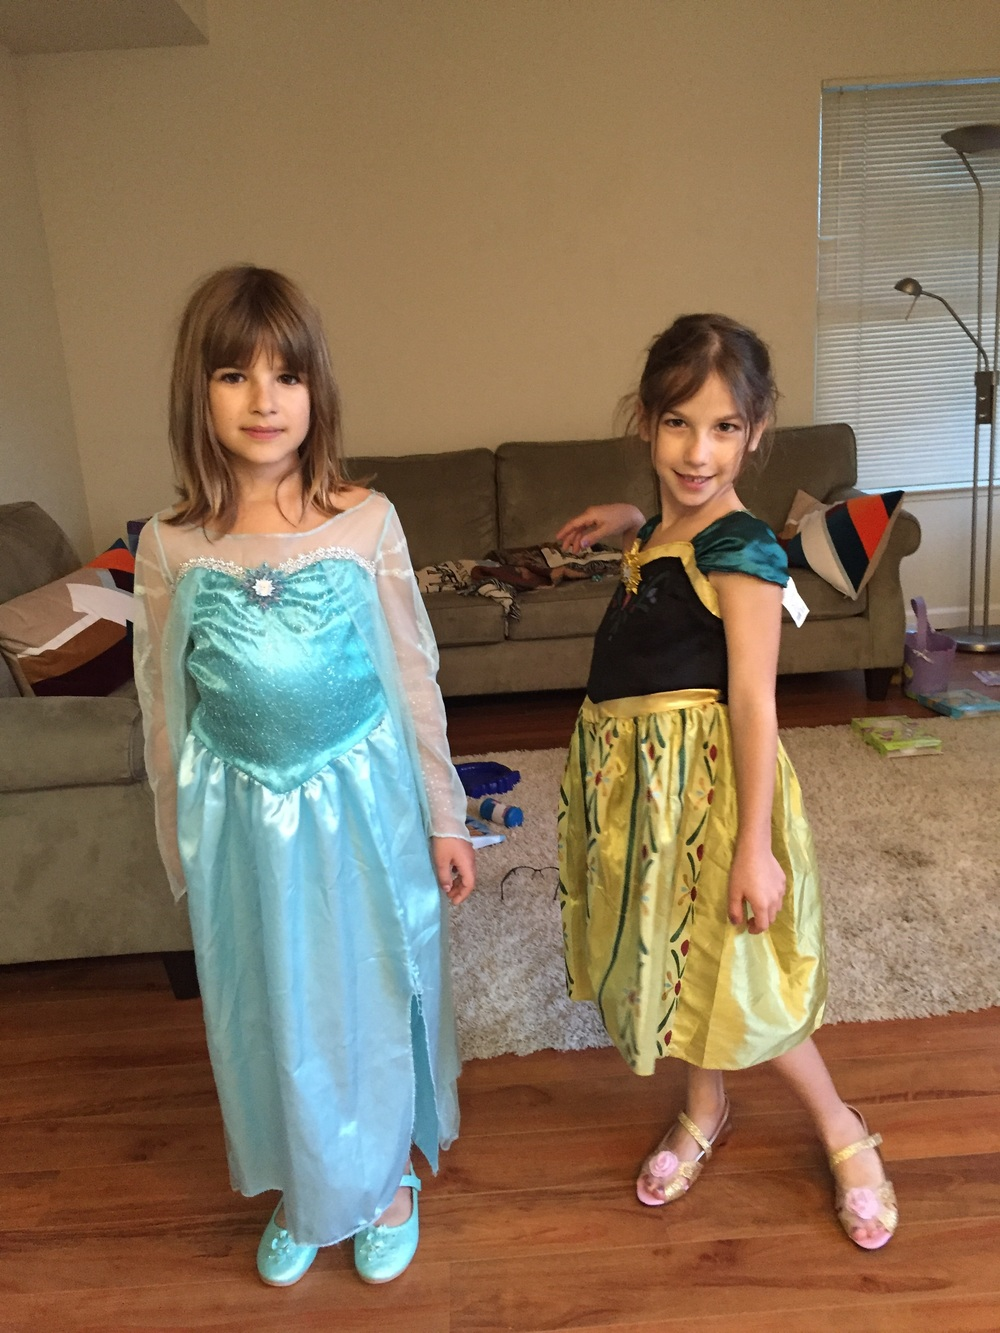 Rediscovering their costumes. Looks good paired with their shoes from Thailand.